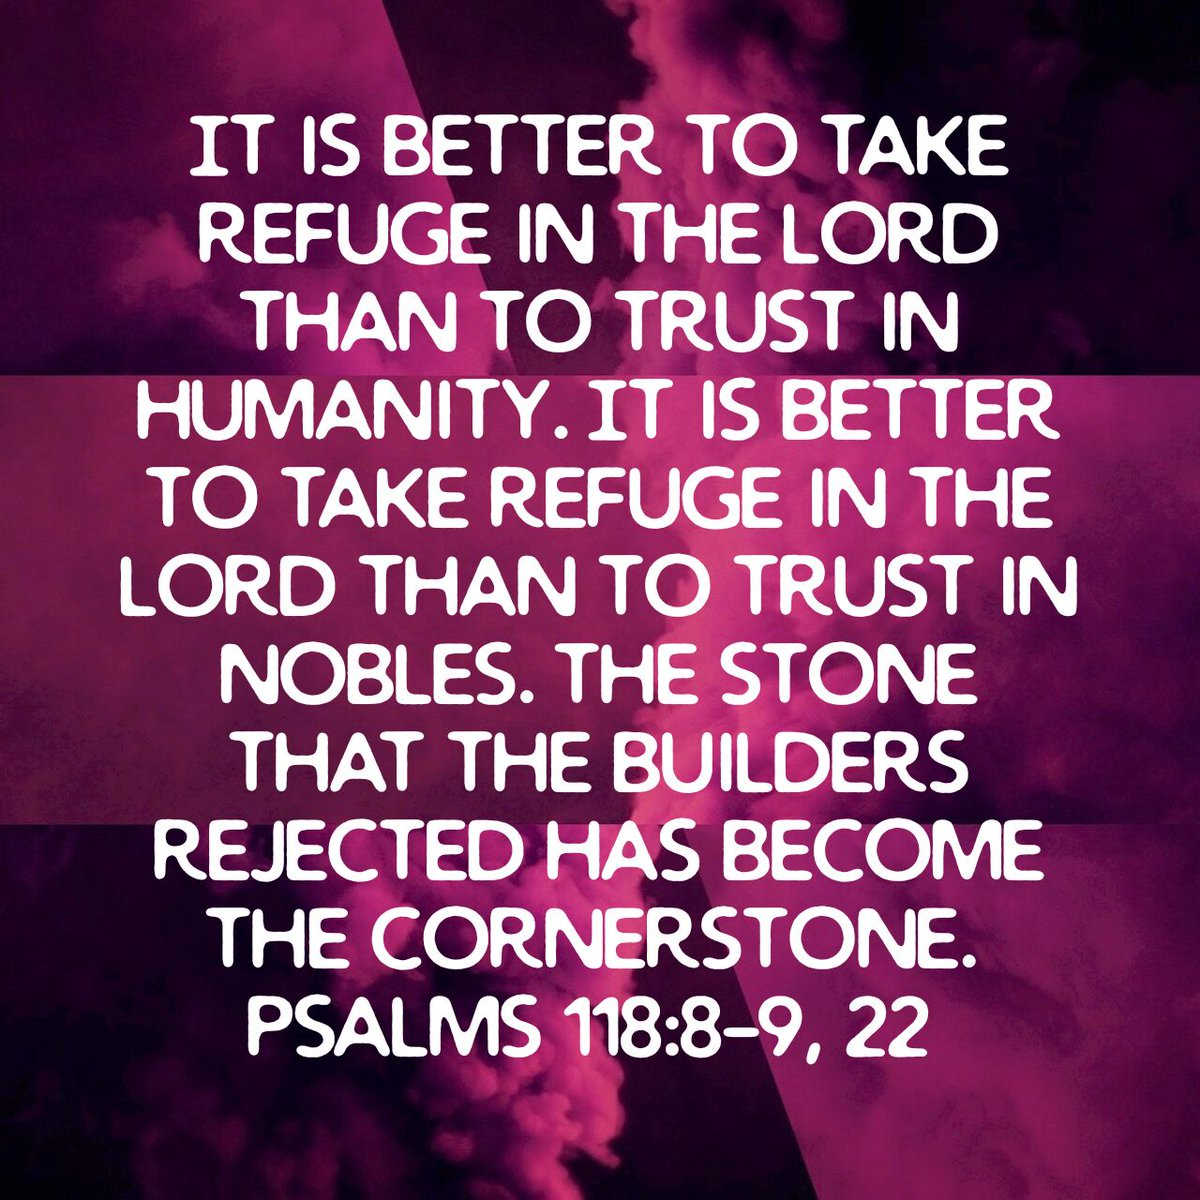 """@KLOVERadio,  Don't let """"#BuildMyLife"""" become something where """"#Together"""" these builders build your life apart from you coming out from them to build on 'the Life' which spoke #ThyWill #Cornerstone   To 'just be' is not to """"#Breathe"""" in their way suggested for you.  #AlmostHome https://t.co/UcPQiNsZcs"""